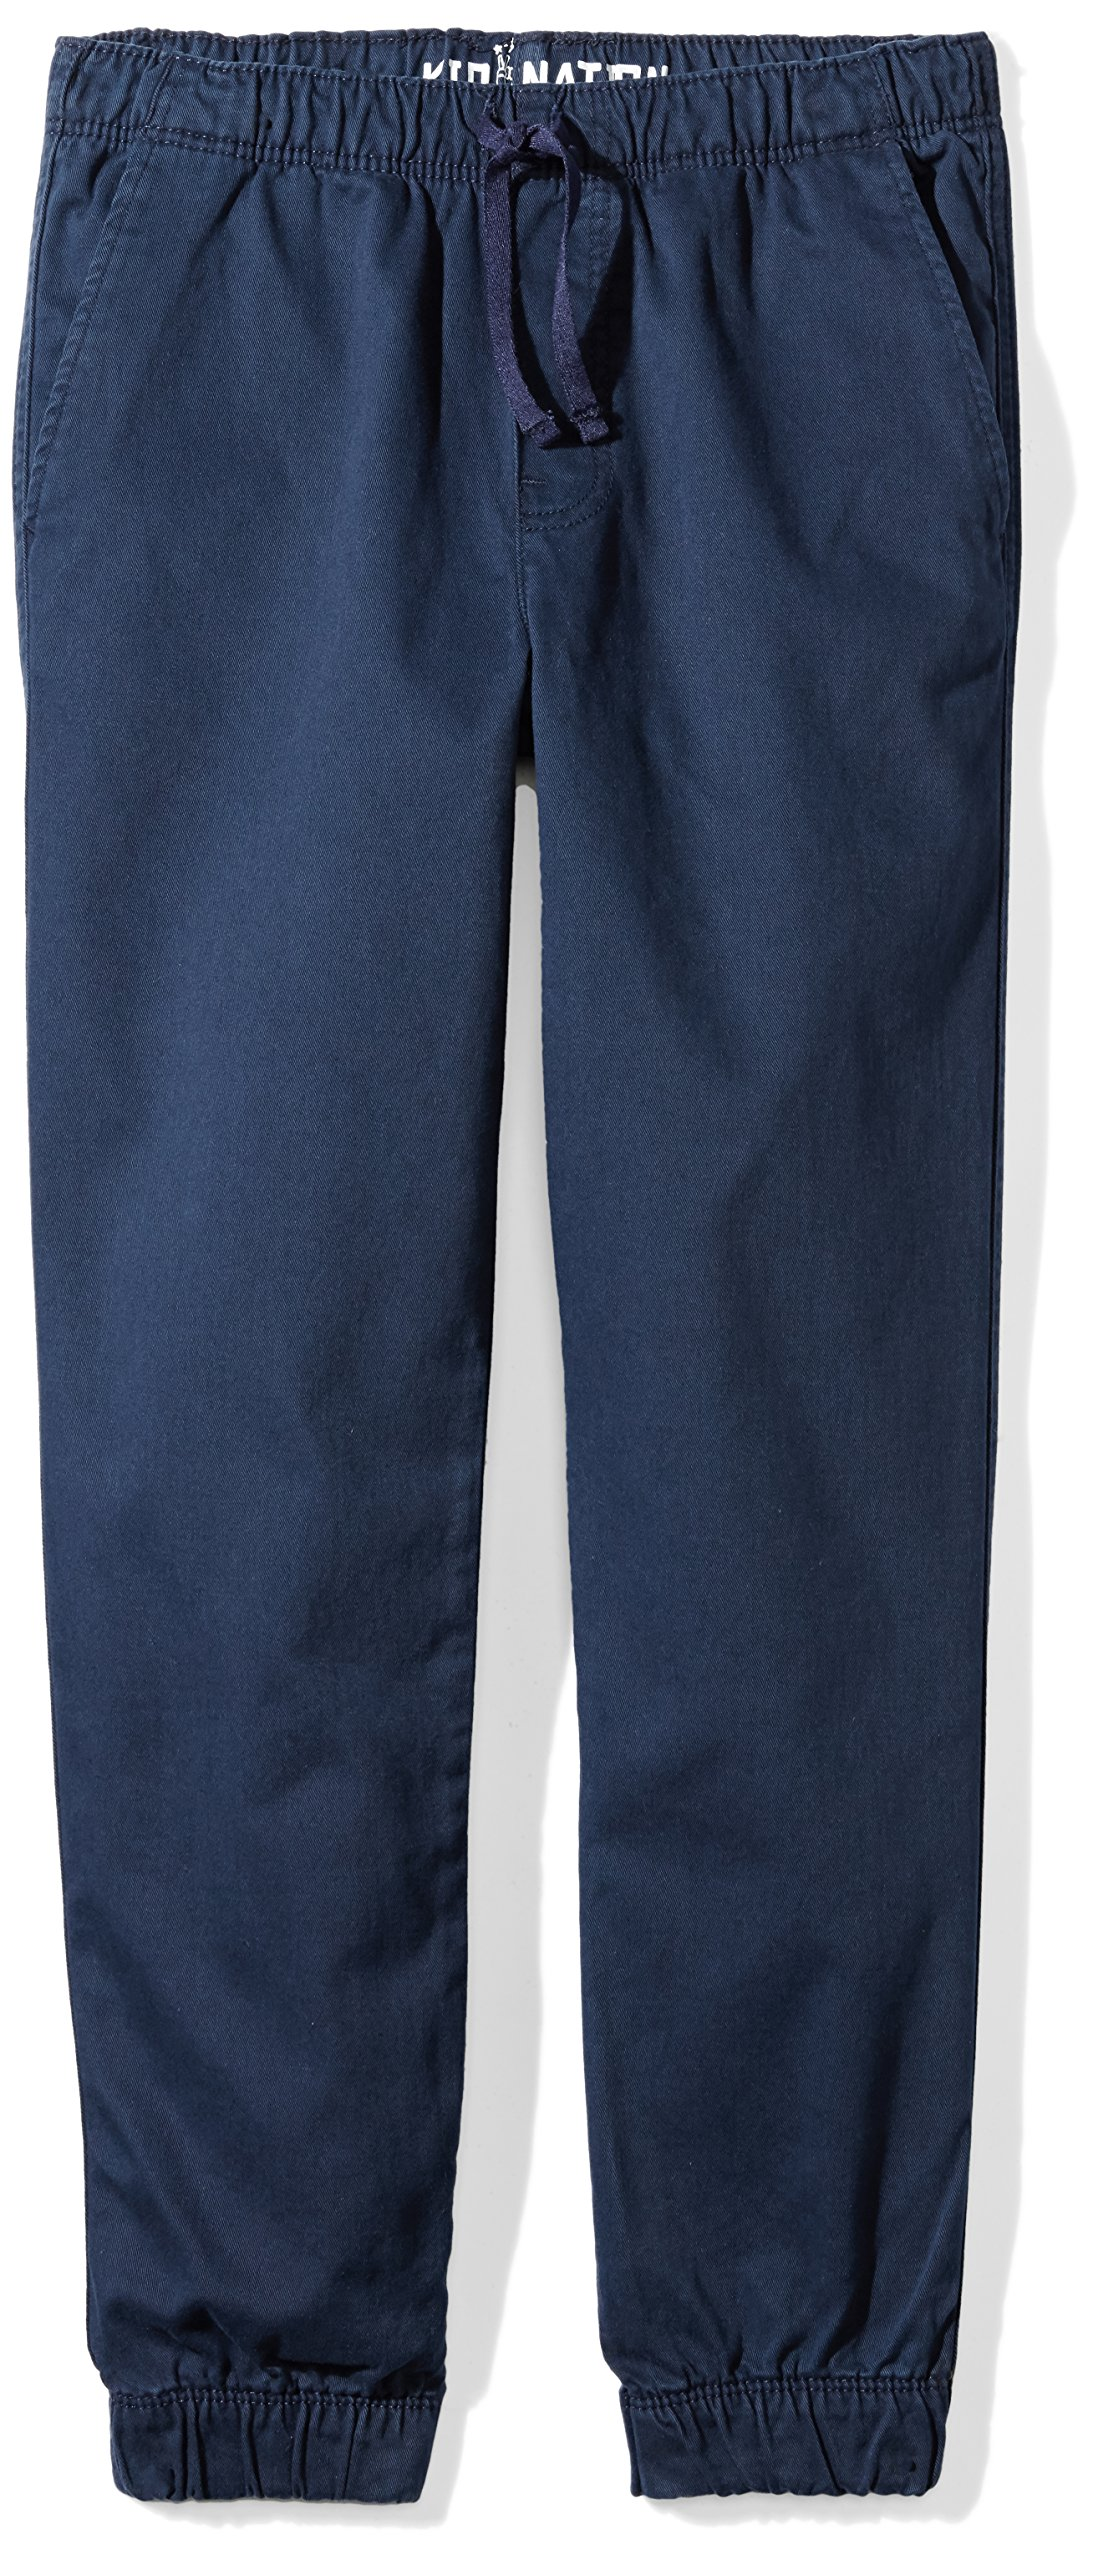 Kid Nation Boys Pull On Jogger Twill Pant Size 6